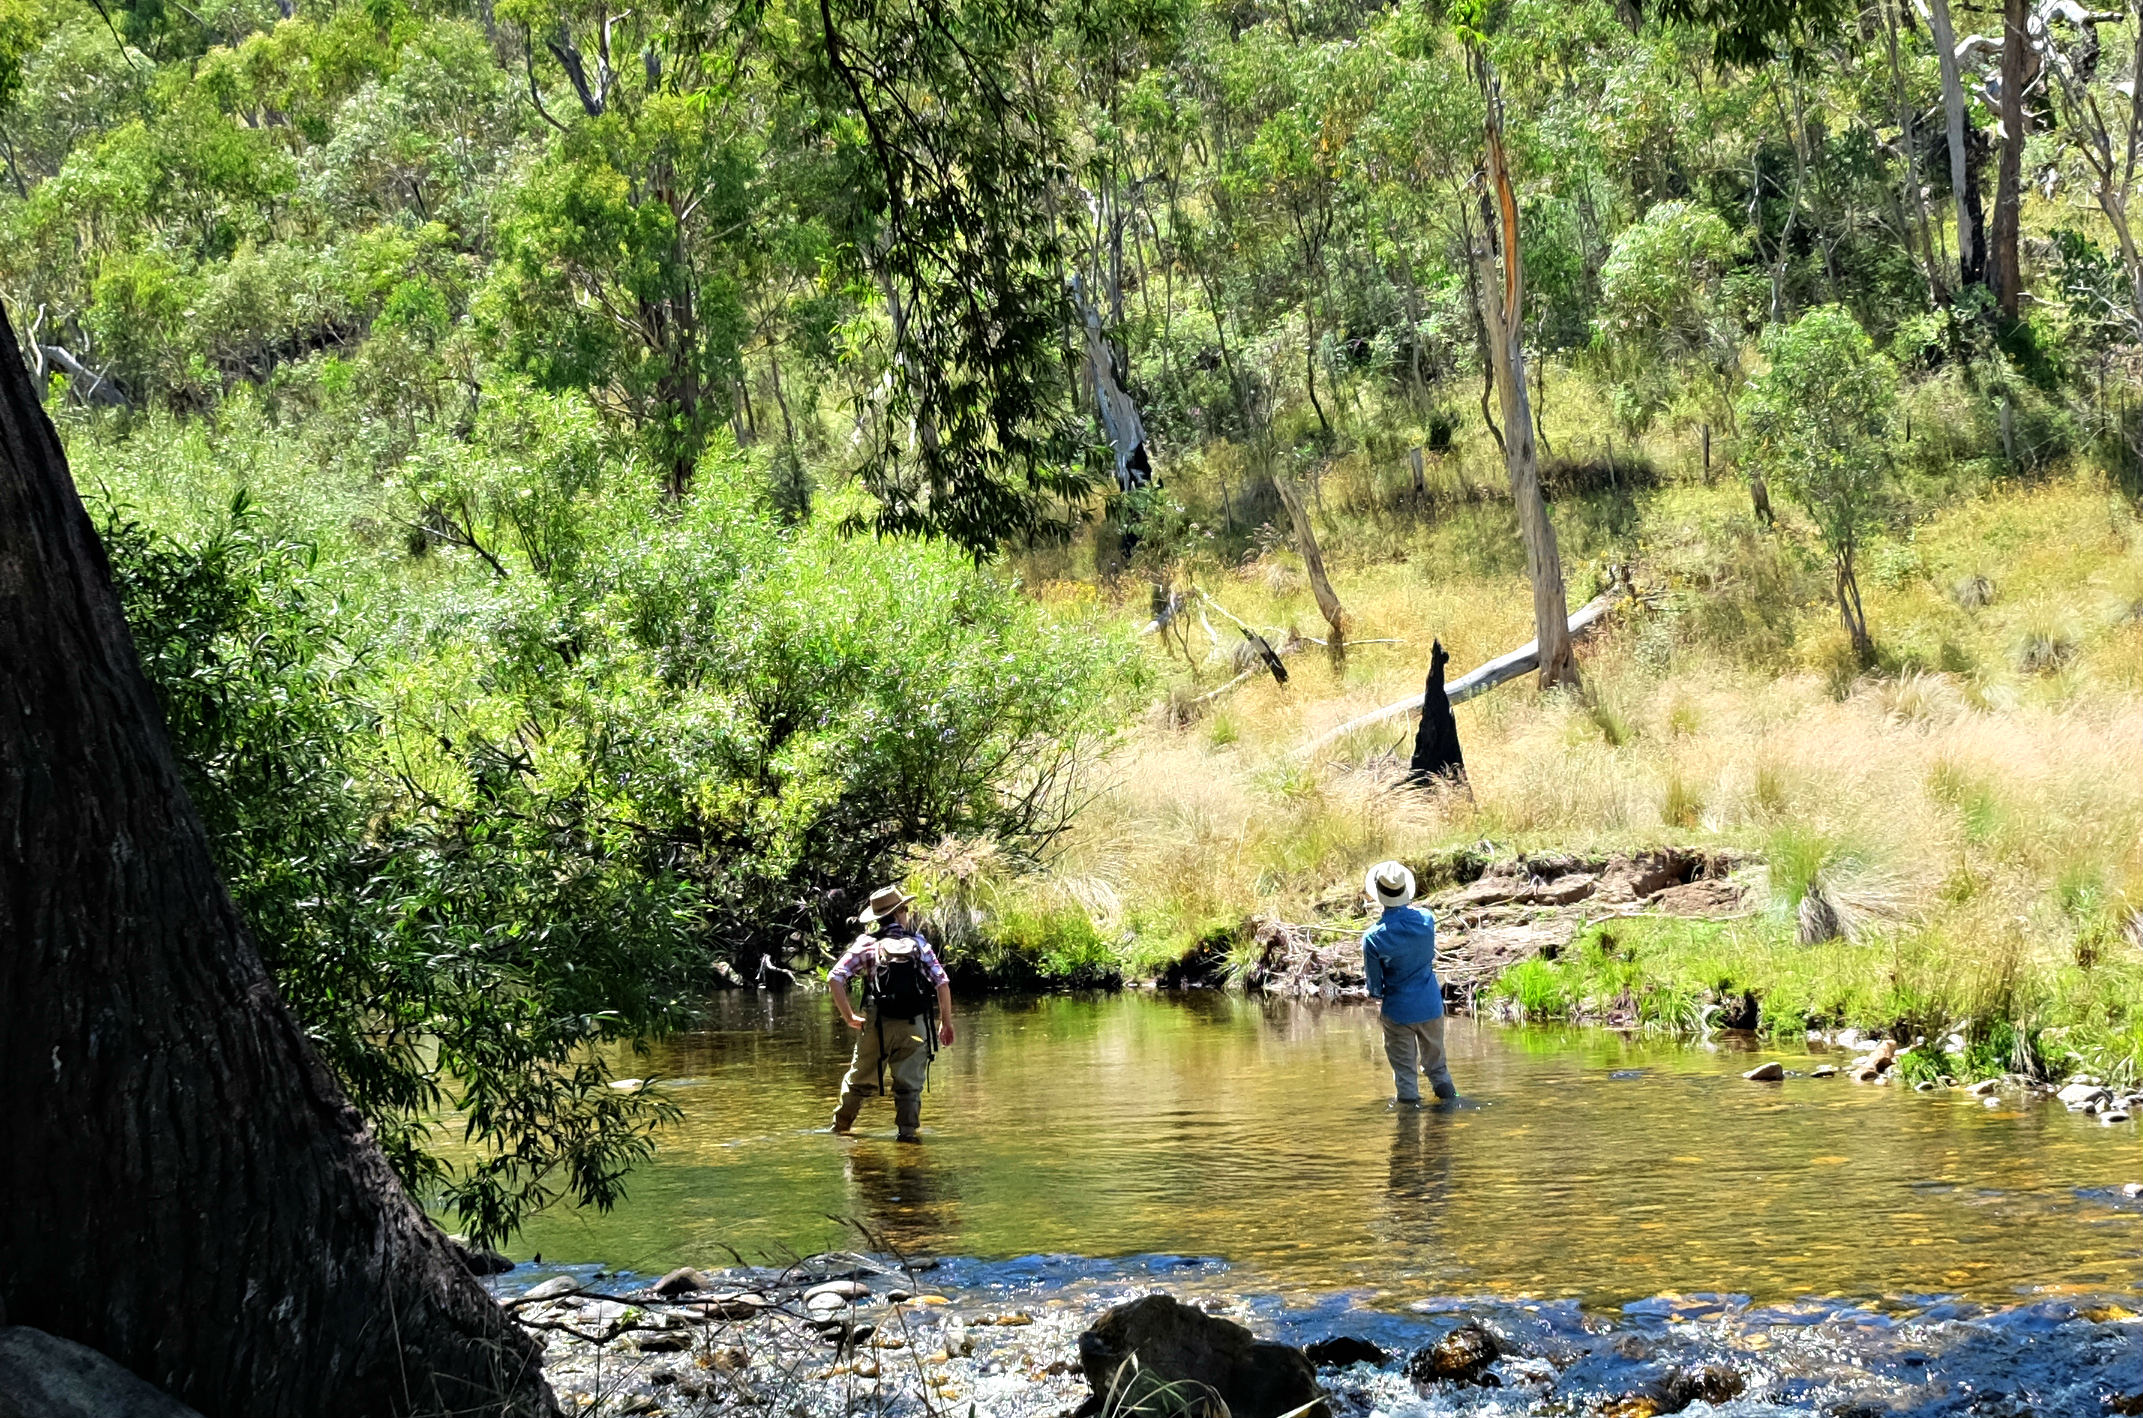 Big adventure, Anglers Rest or Eskdale. - 5 - 6hrs from Melbourne. Minimum booking of 4 people required.Designed for the dreamers, adventurers and anti-naysayers, these trips are truly epic experiences where you'll get to fish and hang out in some of the most remote and beautiful country in Victoria. You need to set aside a bit more time for these trips, but boy are they worth it. Comfortable cabins or accommodation can be arranged for these trips.Day 1: Hit the Bundarra for a dayDay 2: Explore the Big River for a dayDay 3: Smash Middle Creek or the main Mitta Mitta for a day.If you want to stay in the region, my friend Helen Packer offers the most incredible accommodation at The Willows in the Bundarra Valley. Honestly, it's a slice of paradise.